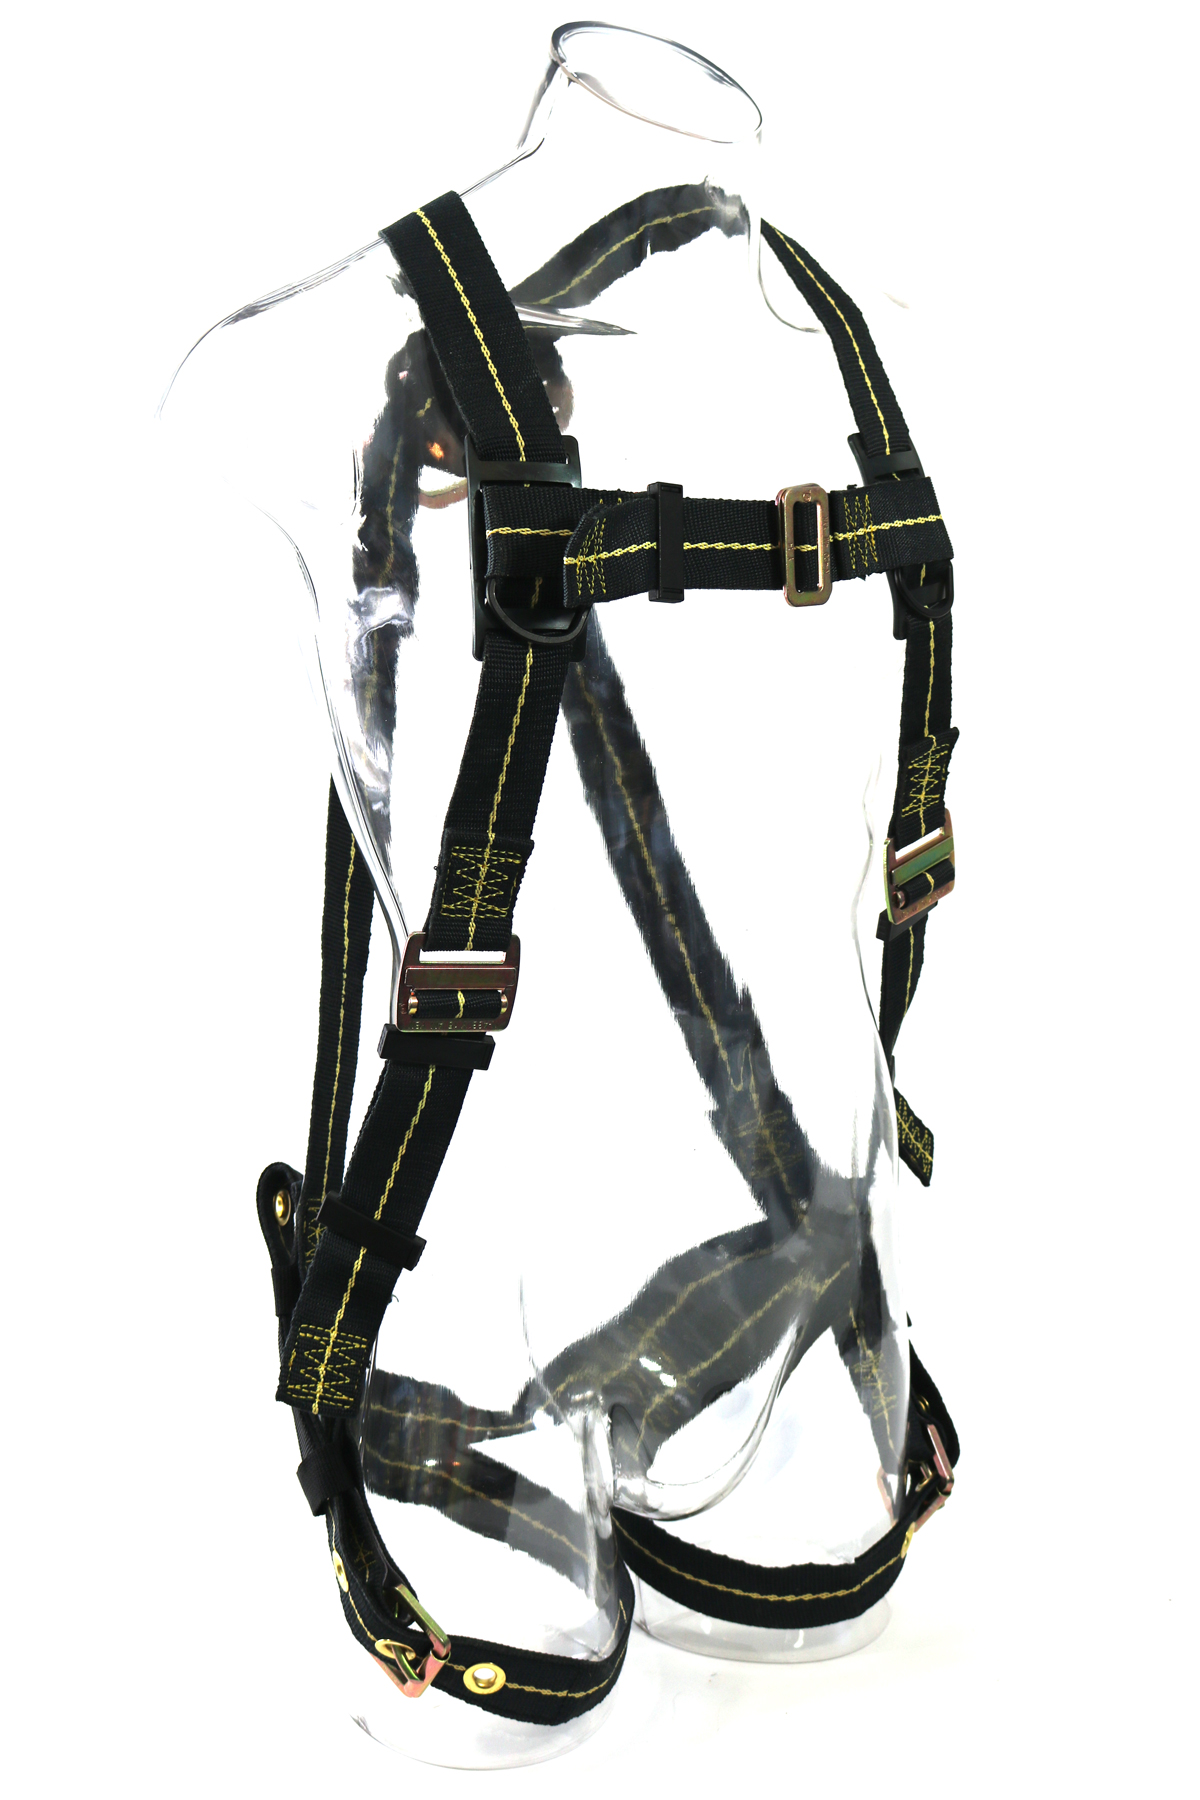 Harnesses Wrs Fall Protection Systems And Osha